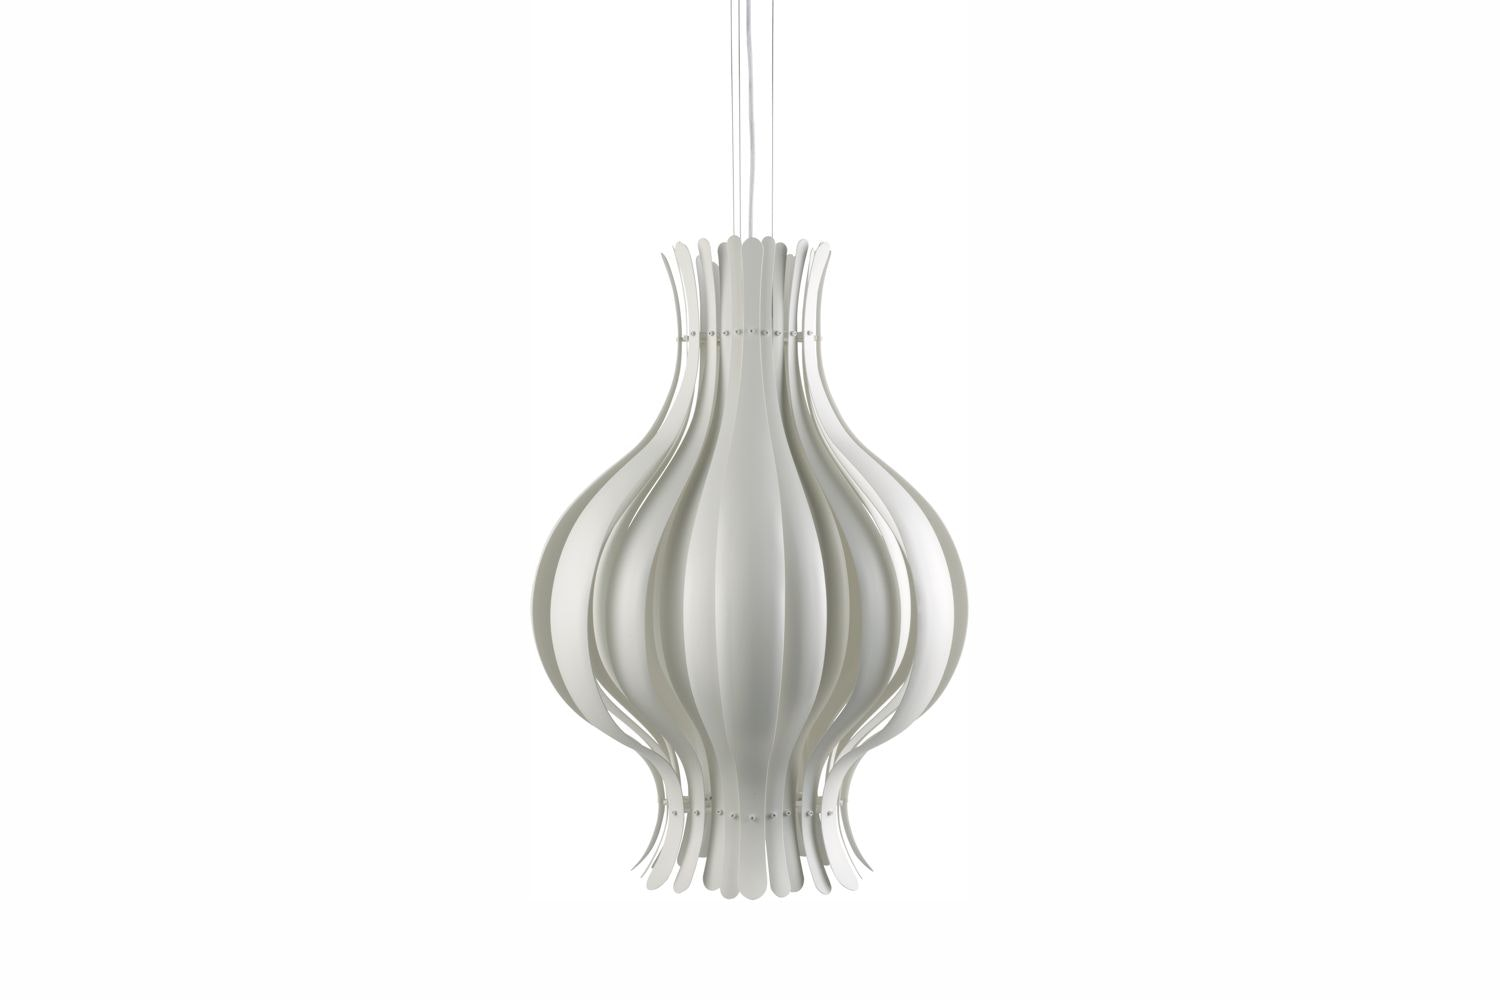 Onion Large Pendant Lamp in White by Verner Panton for Verpan